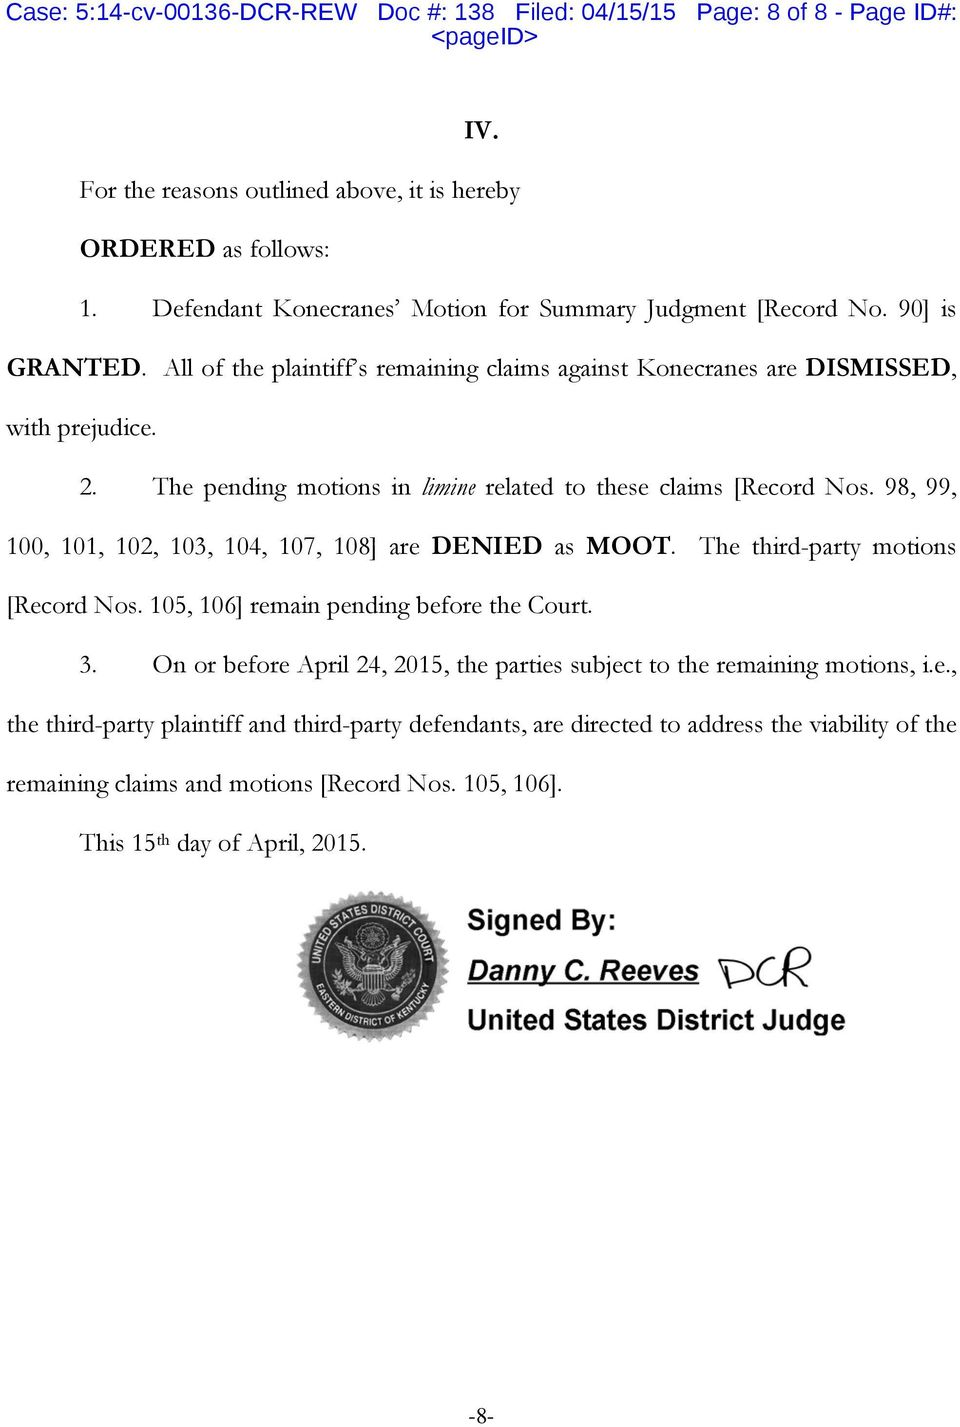 The pending motions in limine related to these claims [Record Nos. 98, 99, 100, 101, 102, 103, 104, 107, 108] are DENIED as MOOT. The third-party motions [Record Nos.